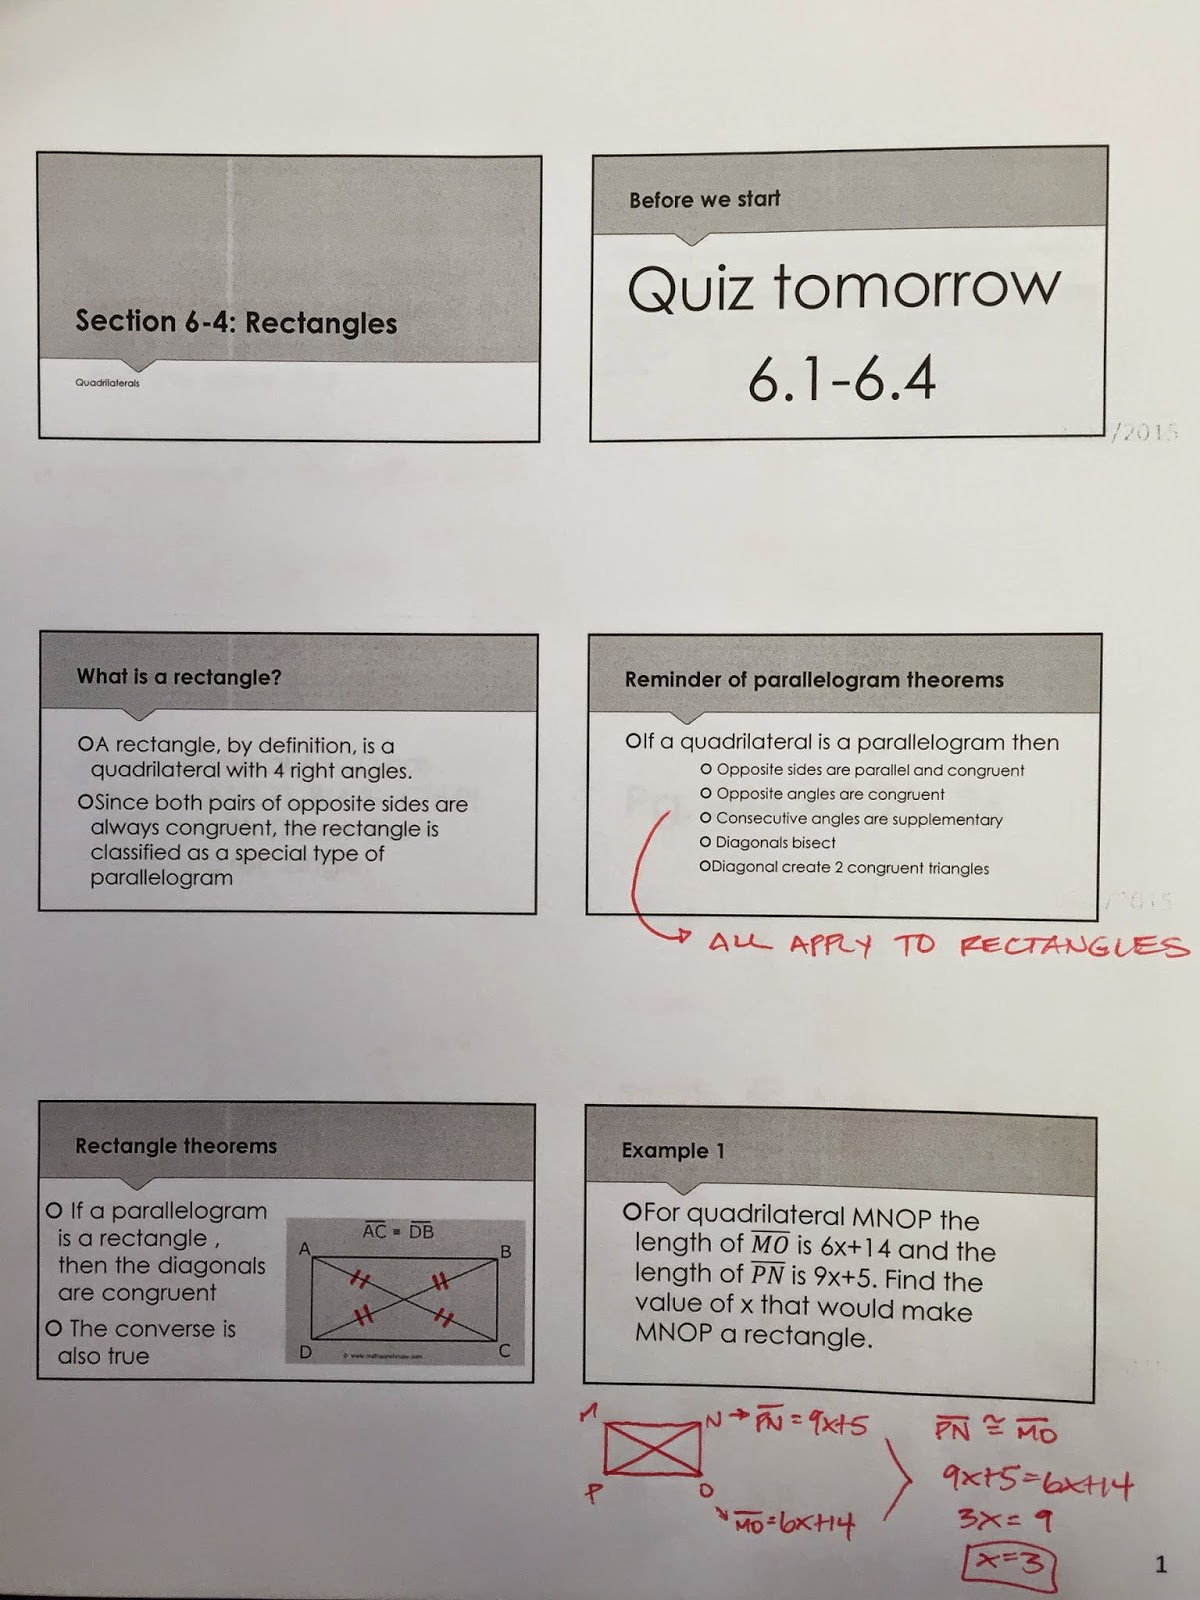 Honors Geometry - Vintage High School: Section 6-4: Rectangles